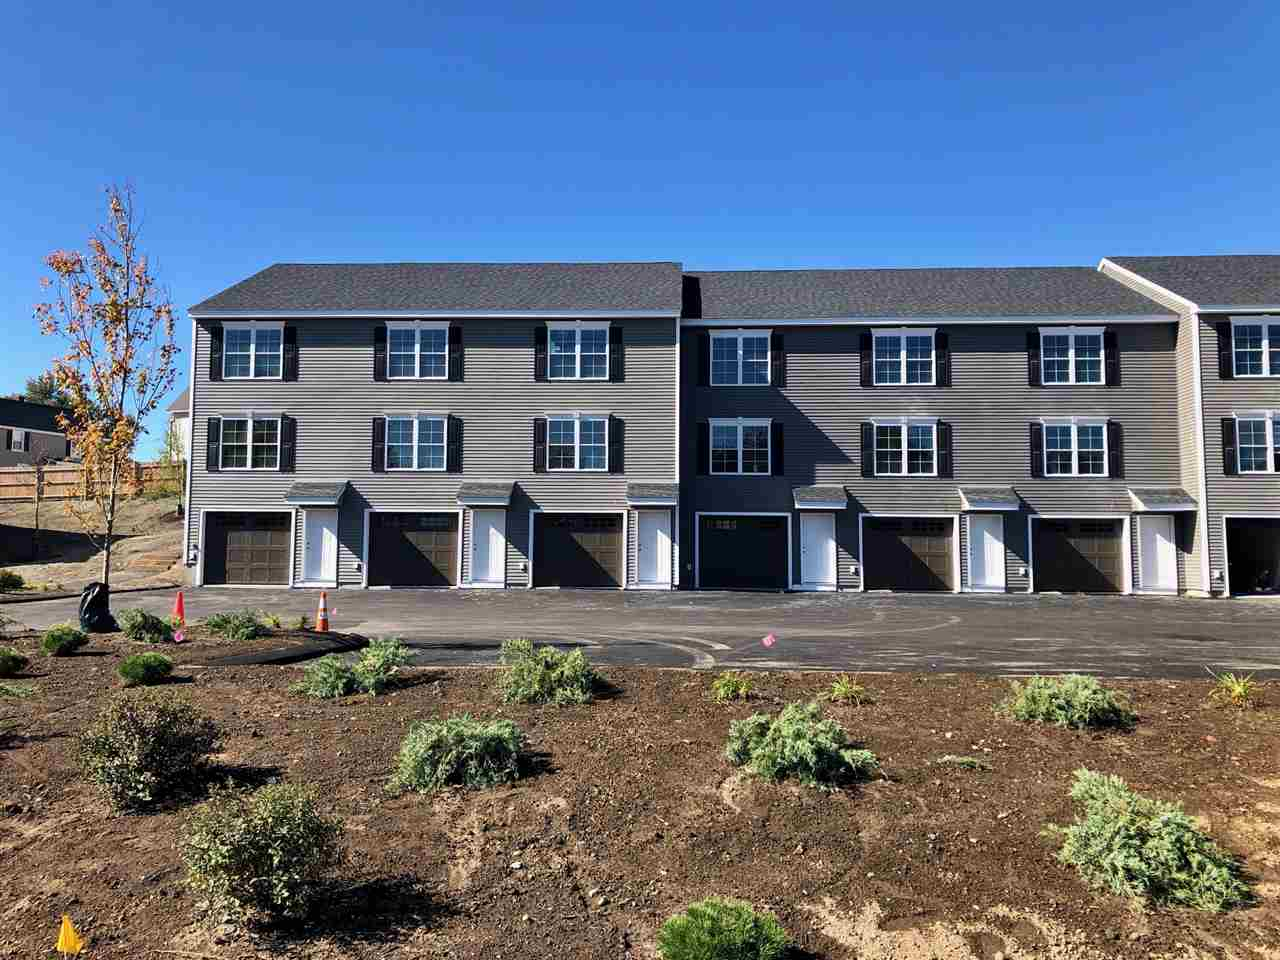 MLS 4787981: 3 Nutfield Court-Unit 8, Derry NH